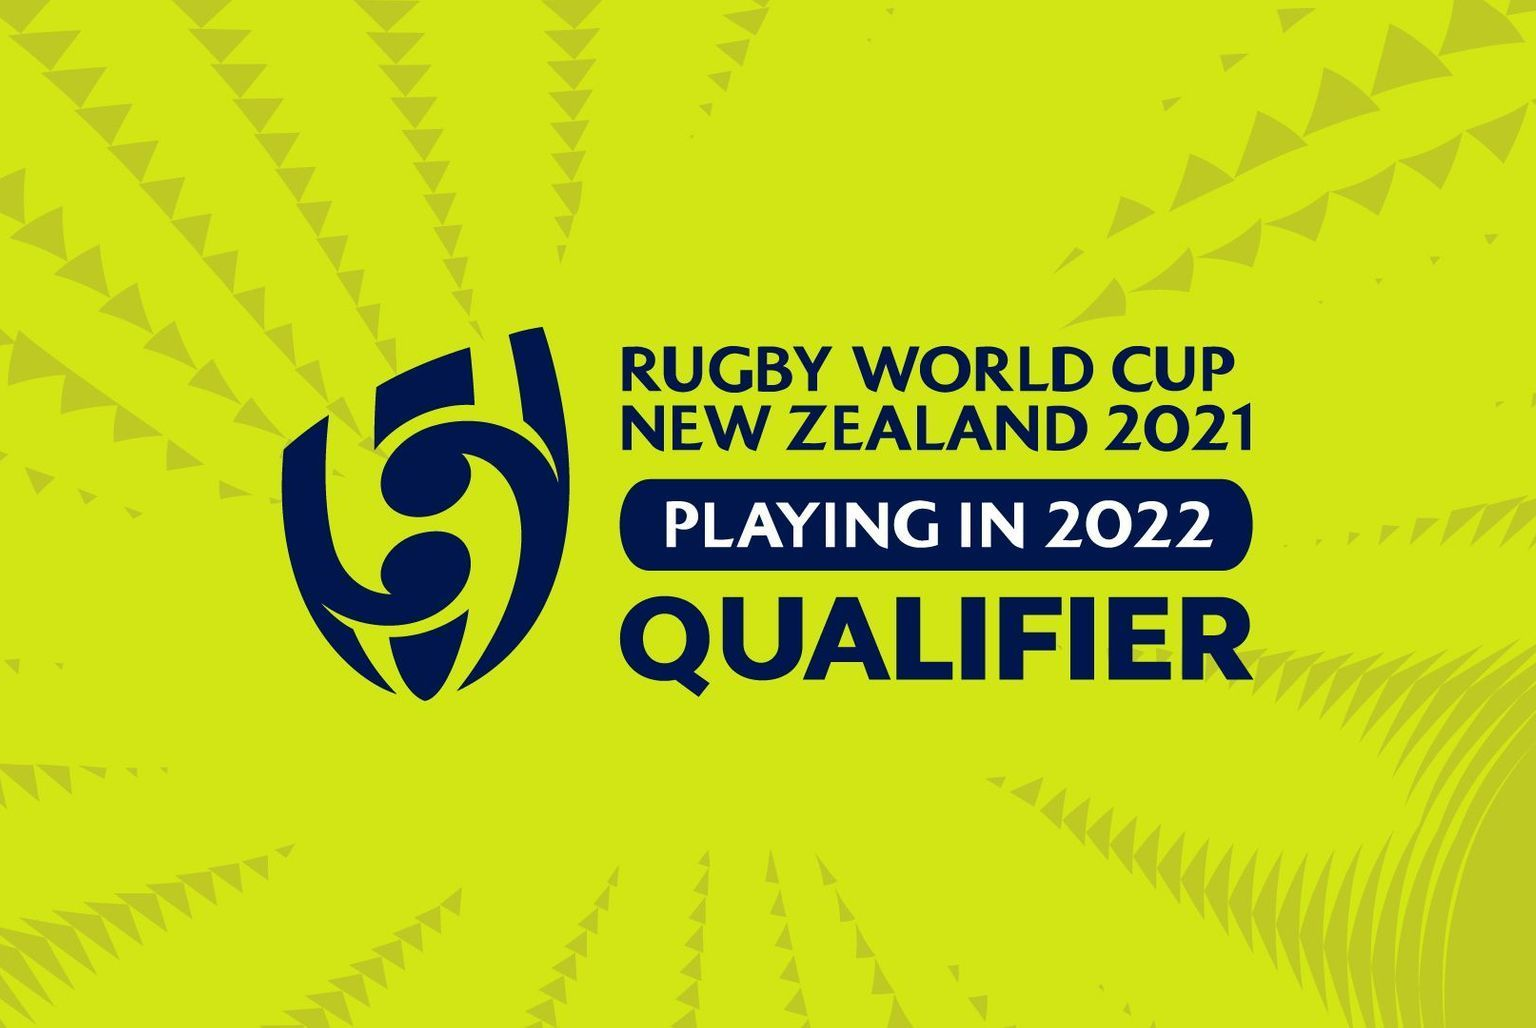 Rugby World Cup 2021 Europe Qualifier